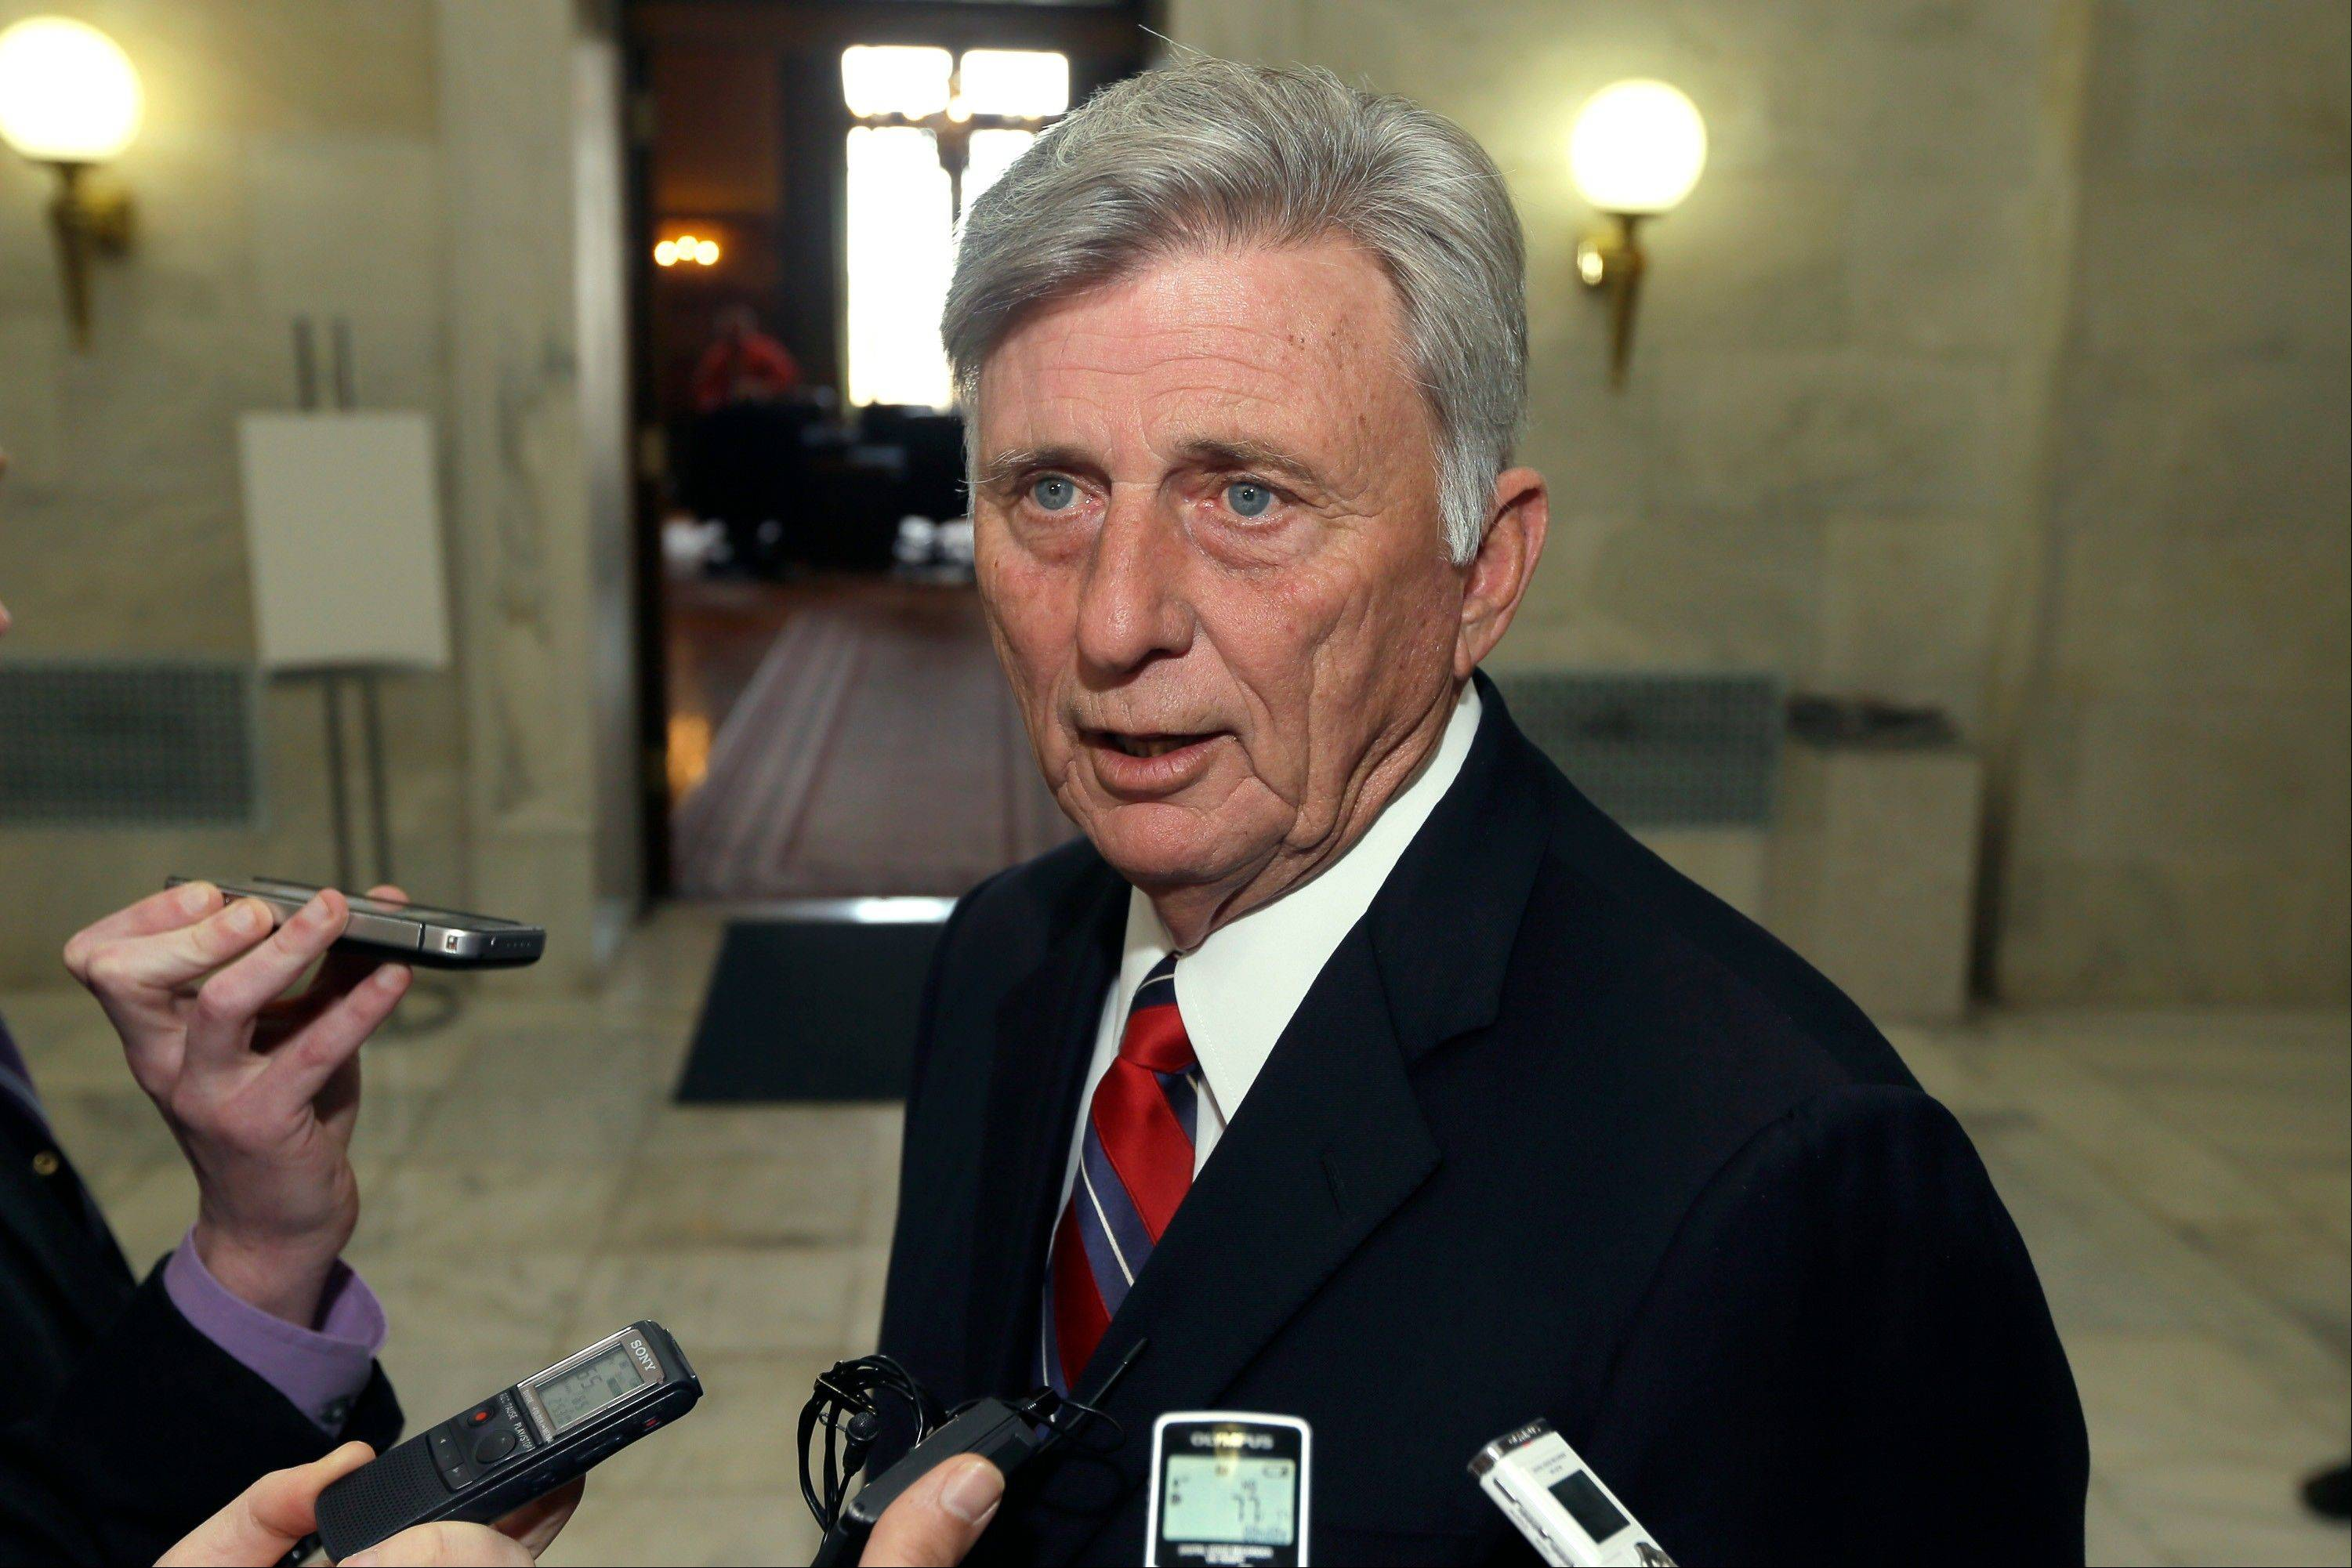 Gov. Mike Beebe speaks to reporters Monday after vetoing legislation that would have banned abortions 12 weeks into a pregnancy. However, his veto was overridden by state legislators Wednesday.